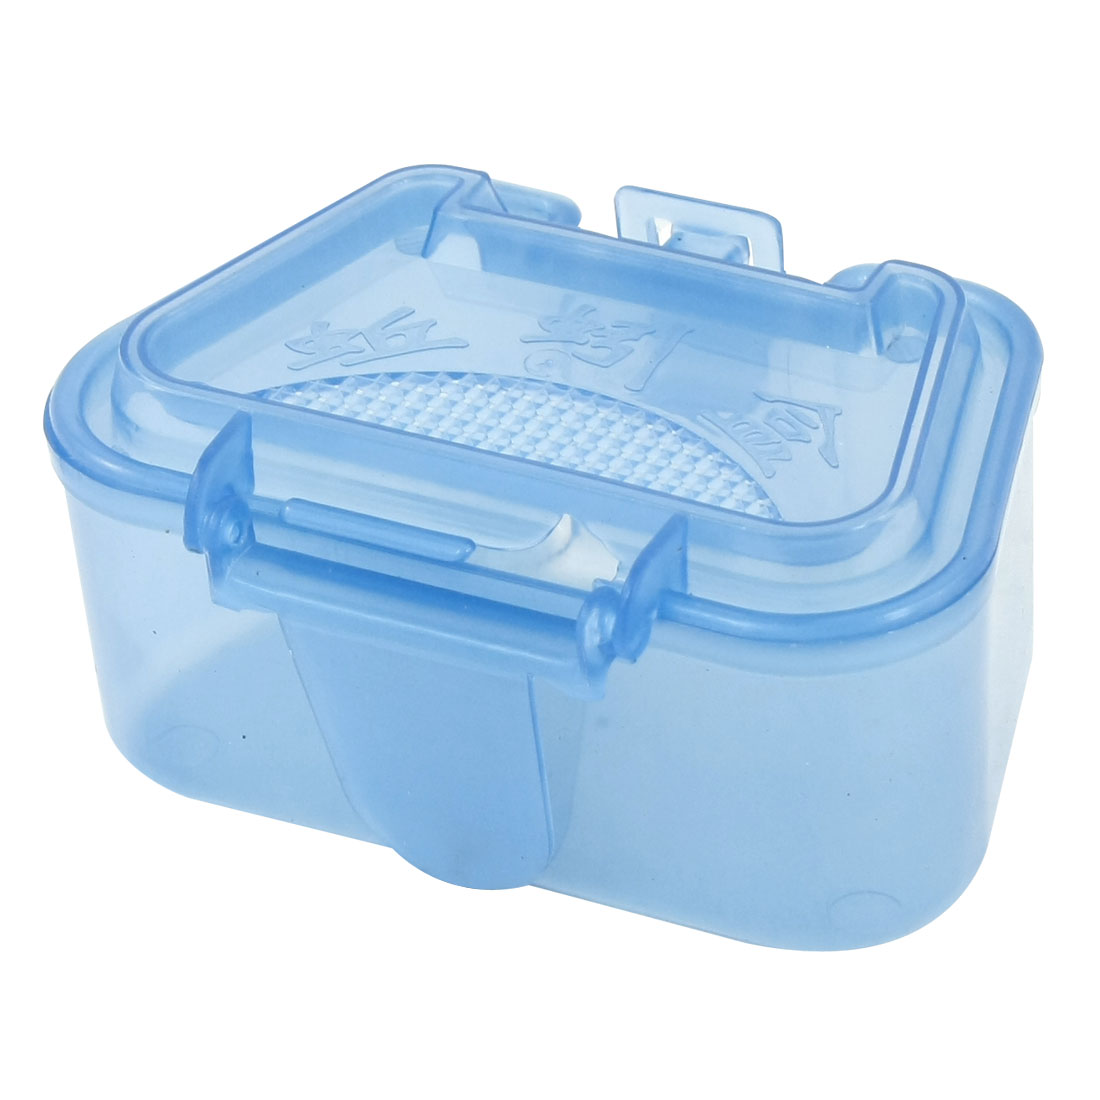 Blue Plastic Fishing Tackle Lure Bait Storage Case Box